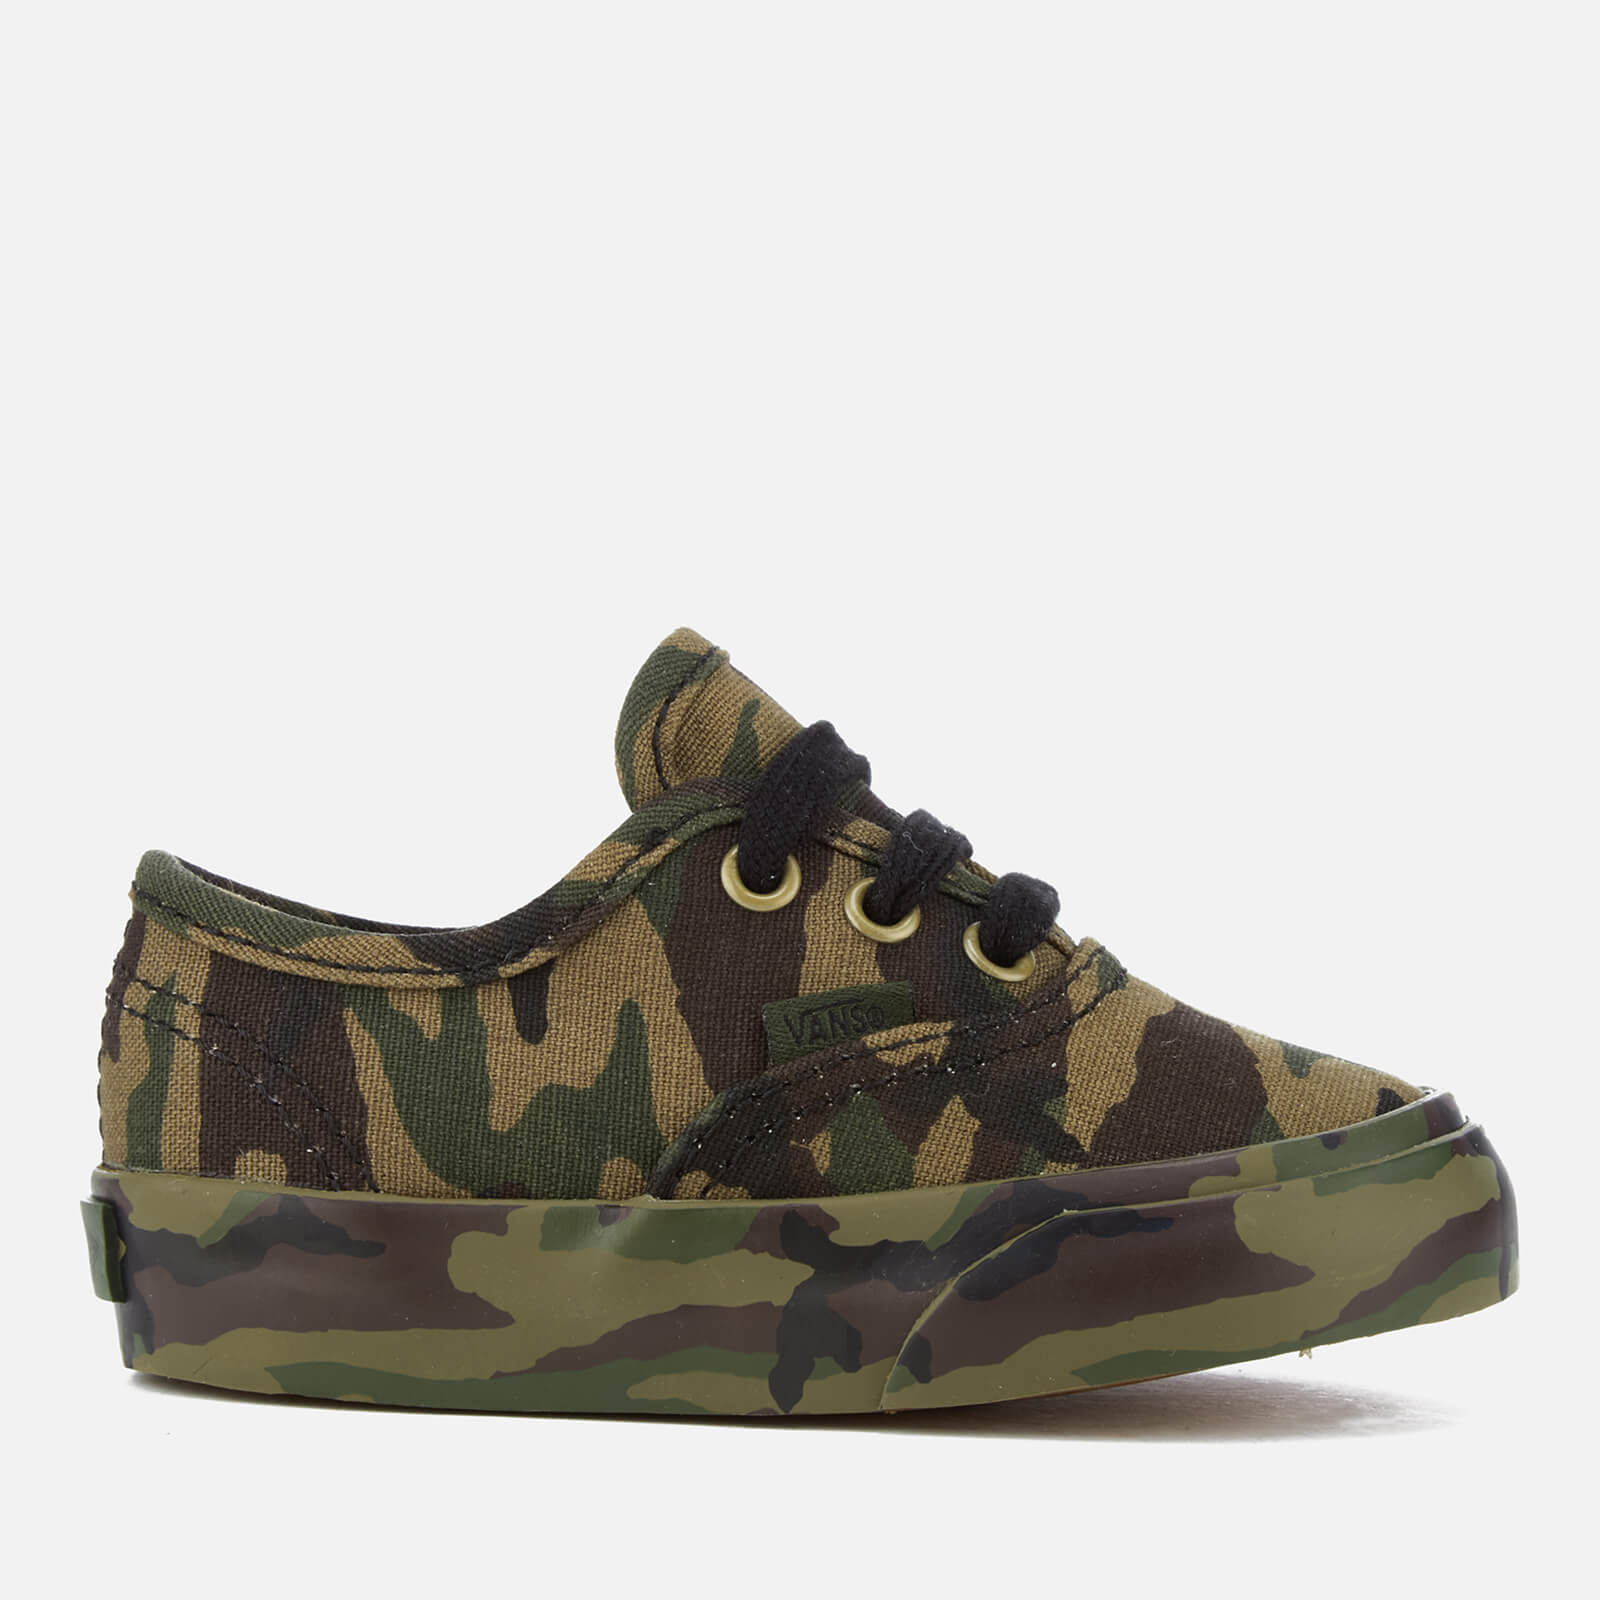 669ec3a9c61596 Vans Toddlers  Authentic Mono Print Trainers - Classic Camo Junior Clothing